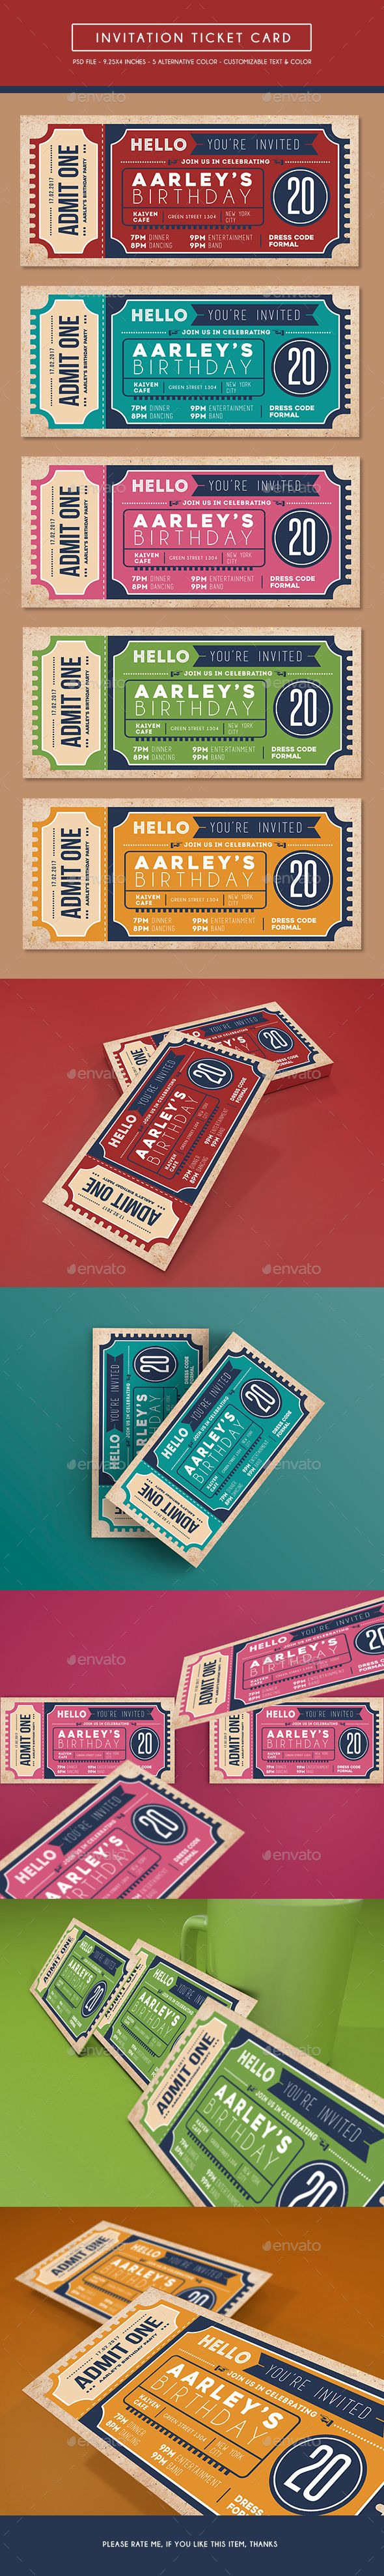 Invitation Ticket • Available here → http://graphicriver.net/item/invitation-ticket-/14968921?s_rank=121&ref=pxcr